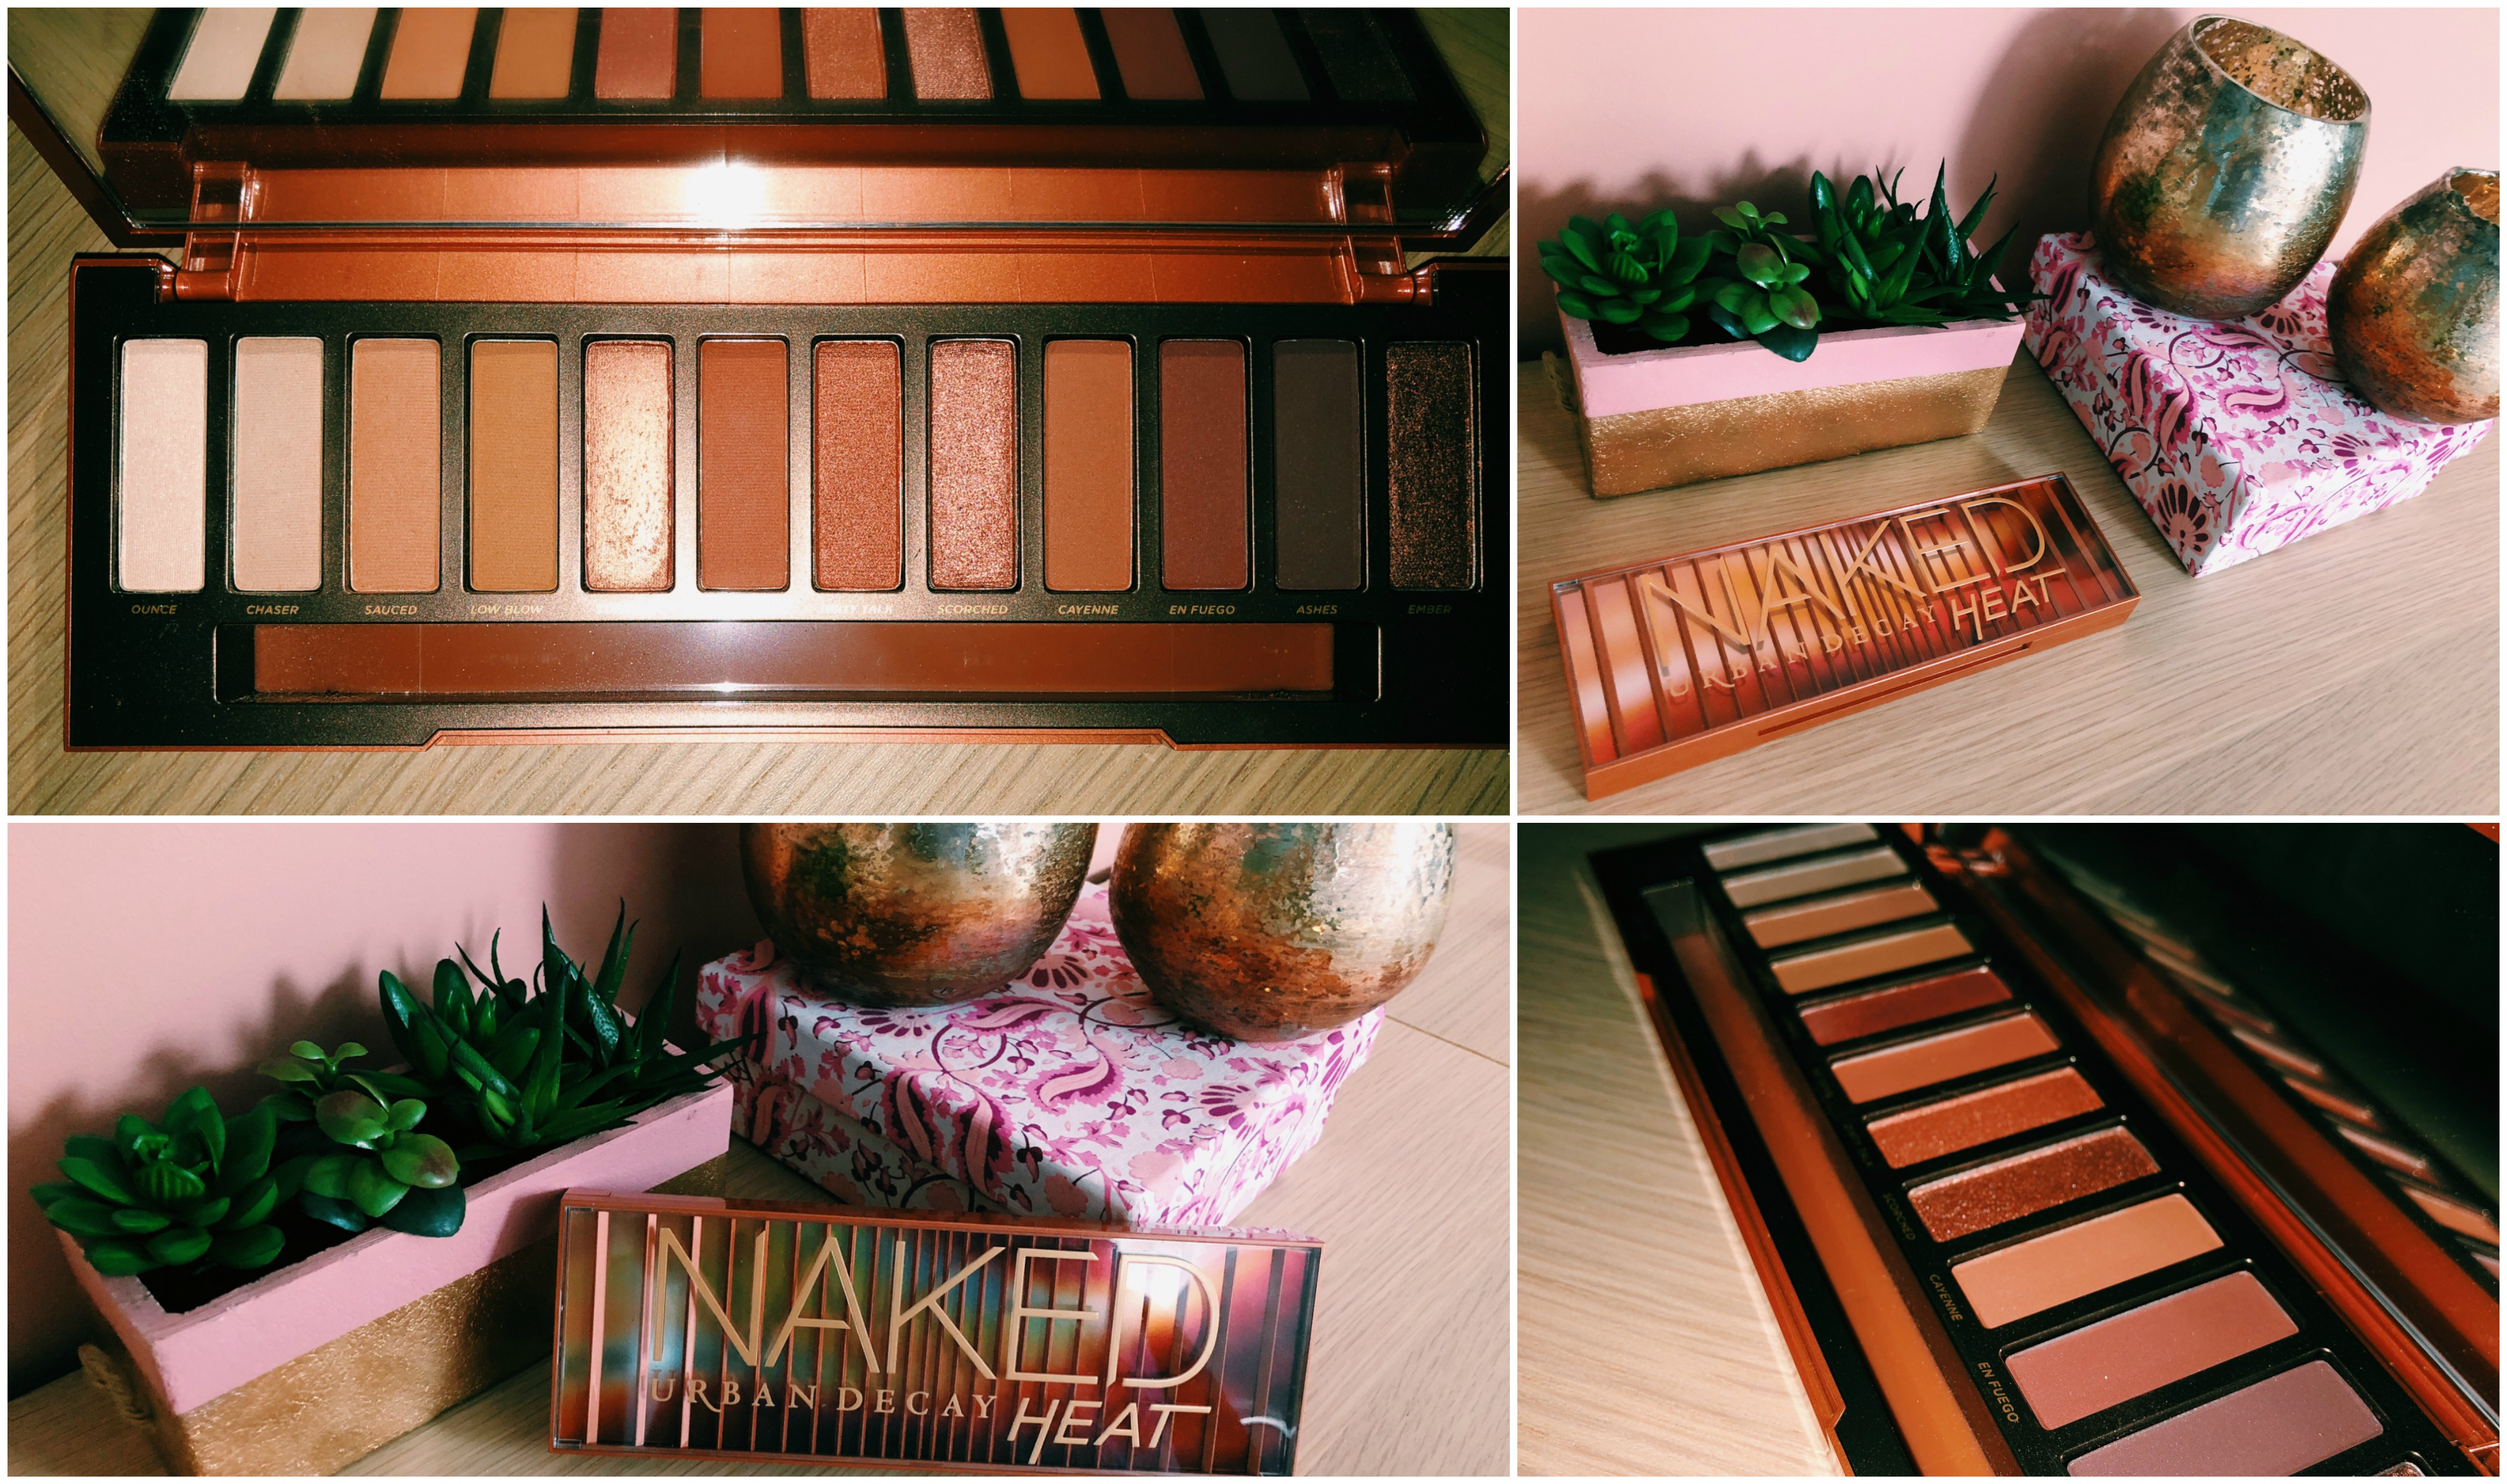 URBAN DECAY: NAKED HEAT PALETTE – REVIEW